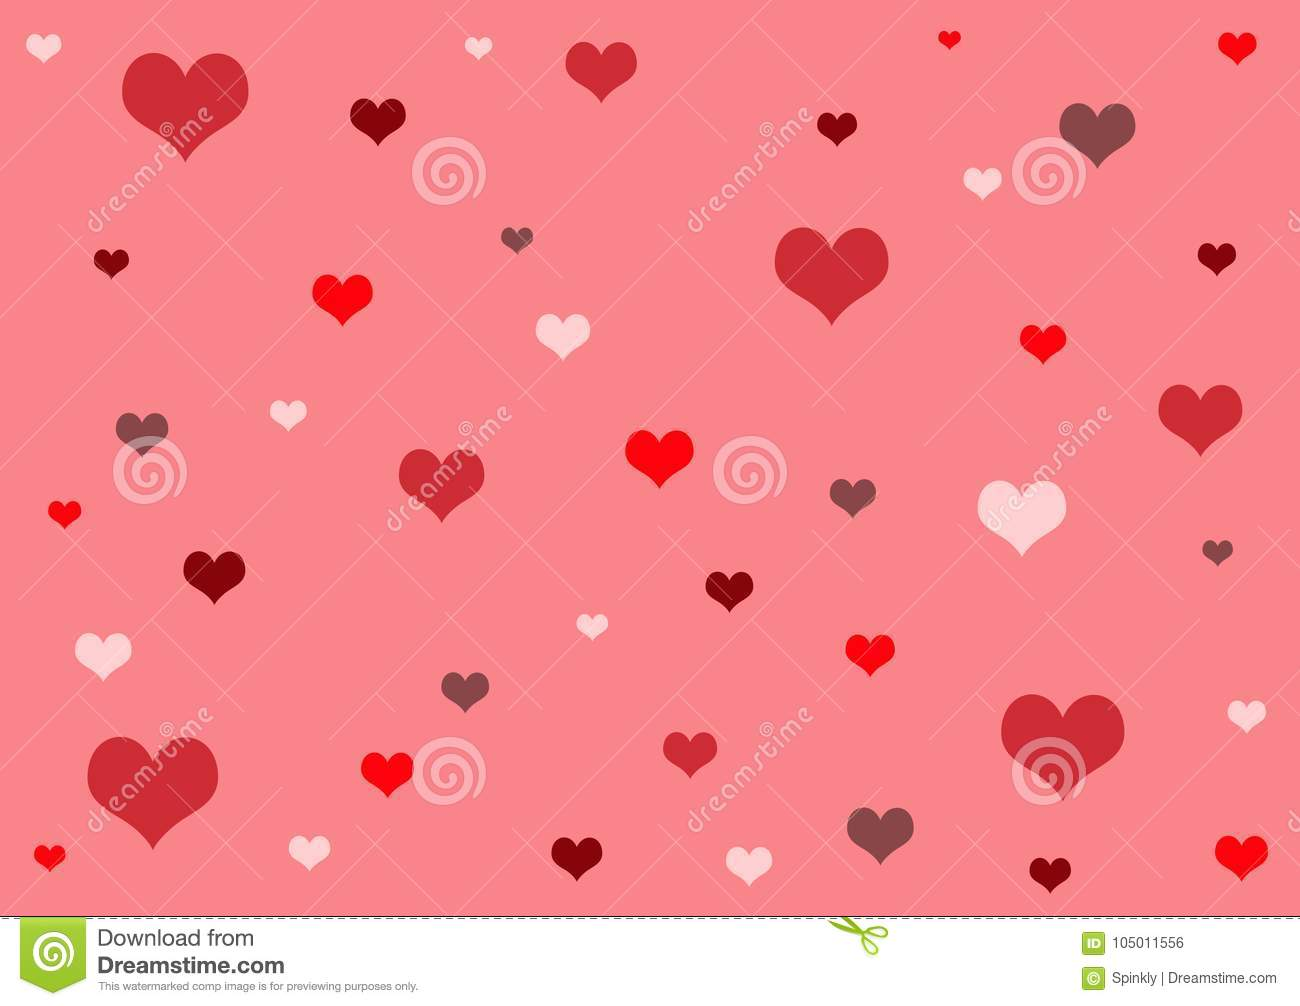 Red Shades Of Heart Pattern Wallpaper